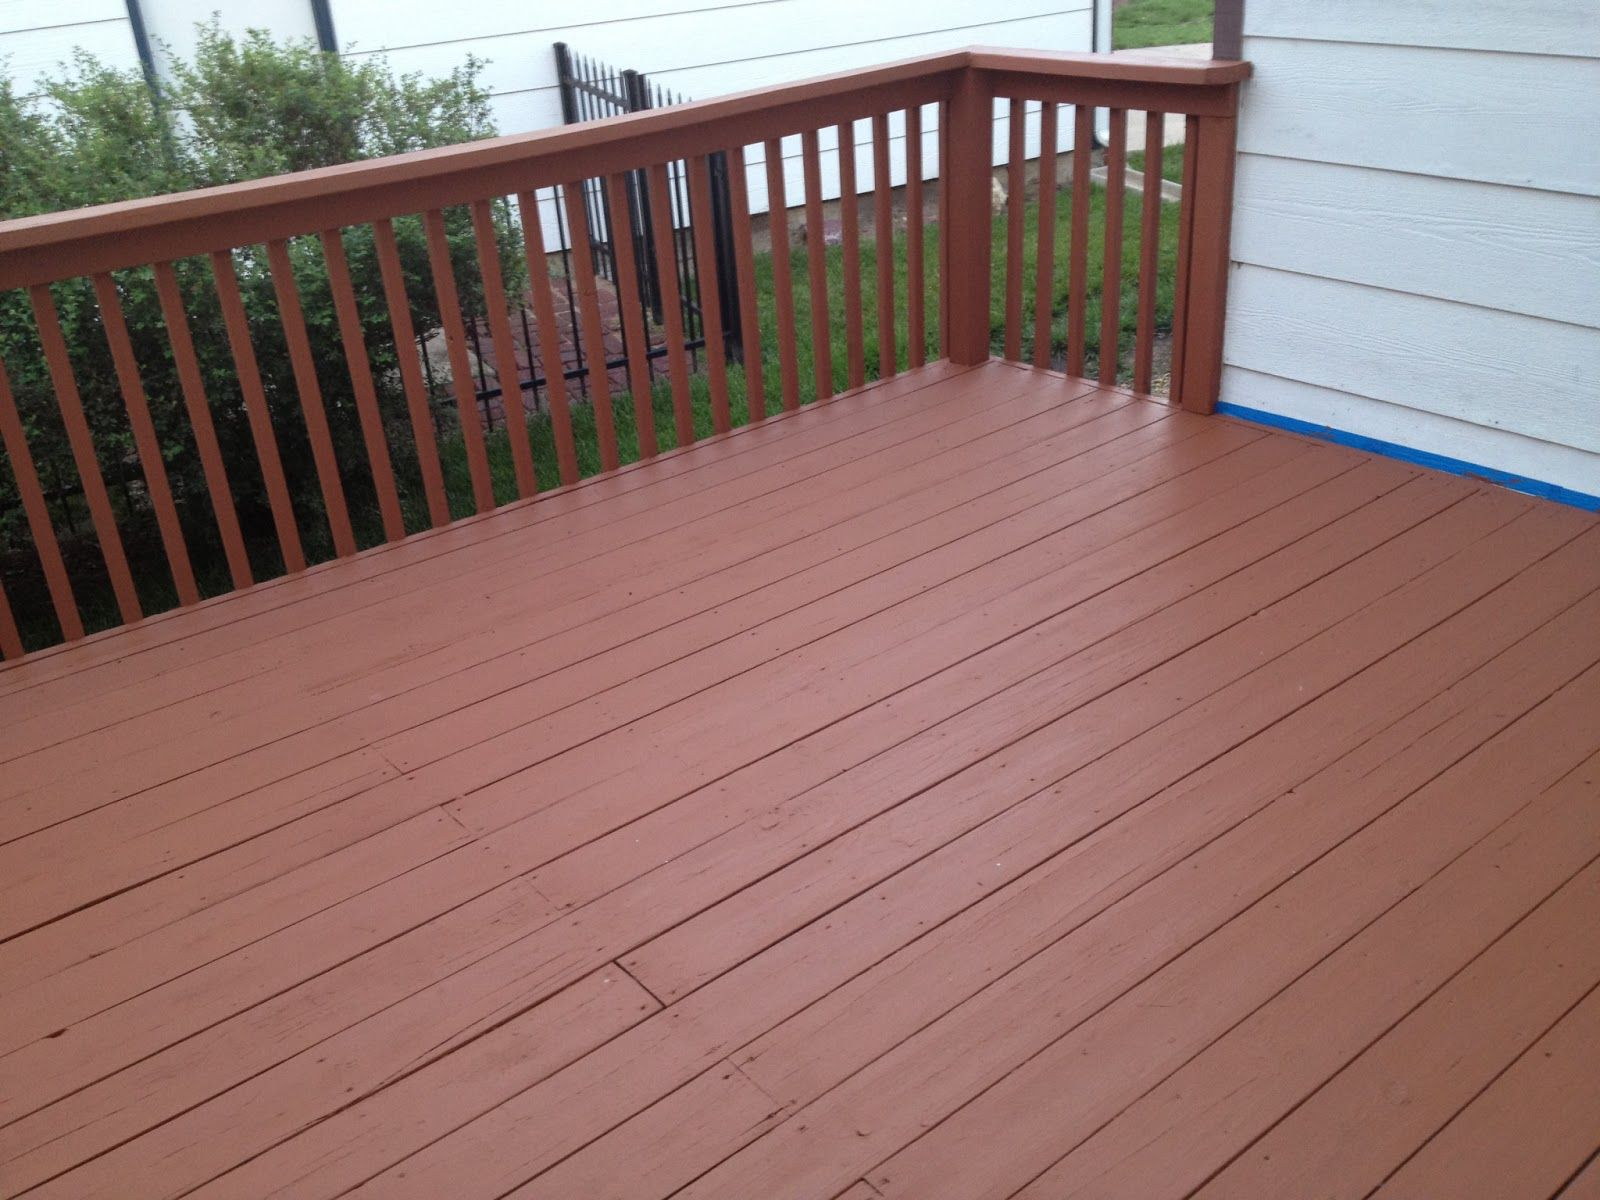 Handy In Ks Behr Deckover Review Deck Paint Staining Deck Behr Deck Over Colors